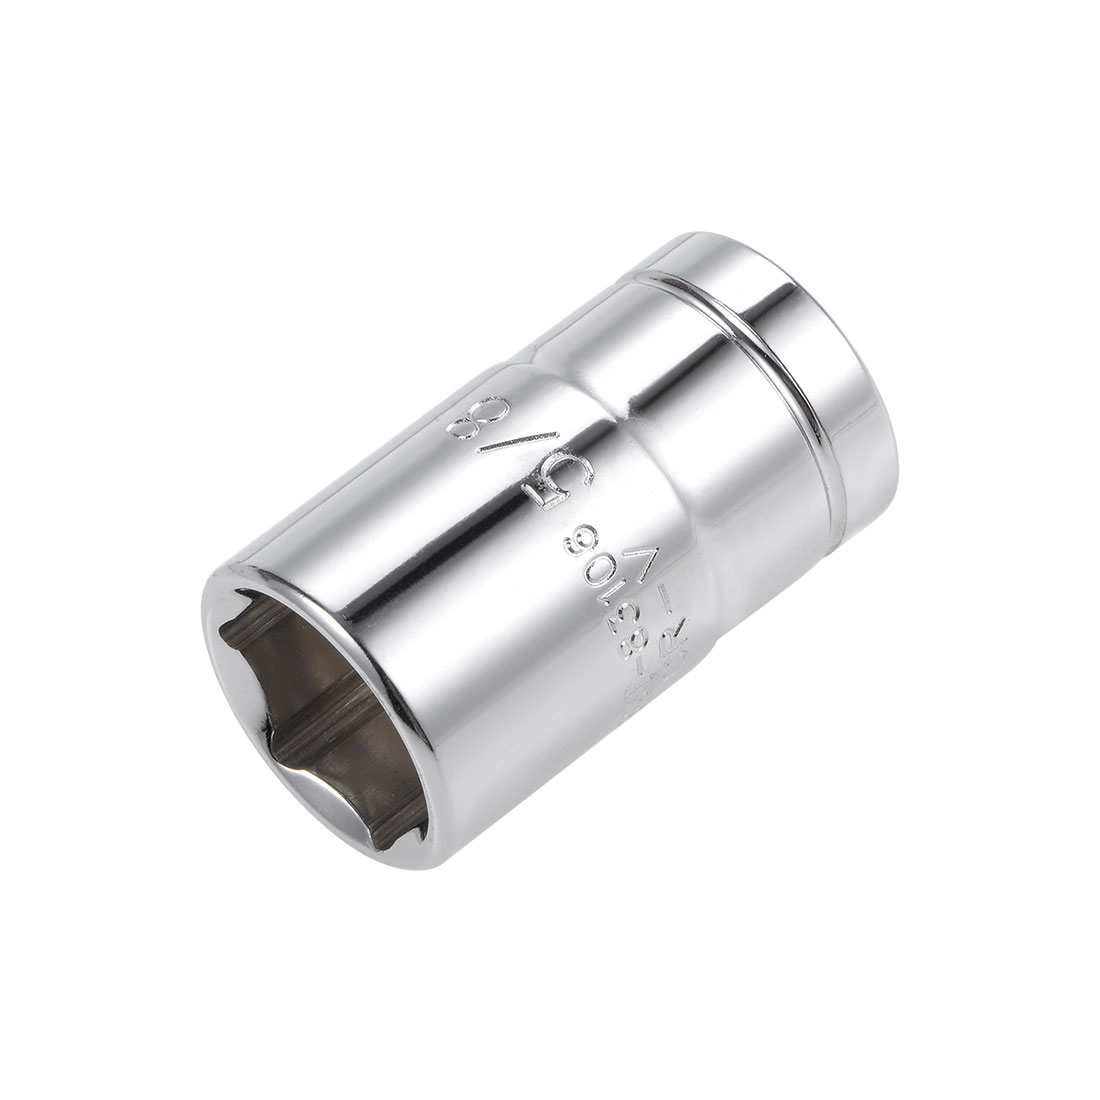 1/2-inch Drive 5/8-inch 6-Point Shallow Socket, Cr-V